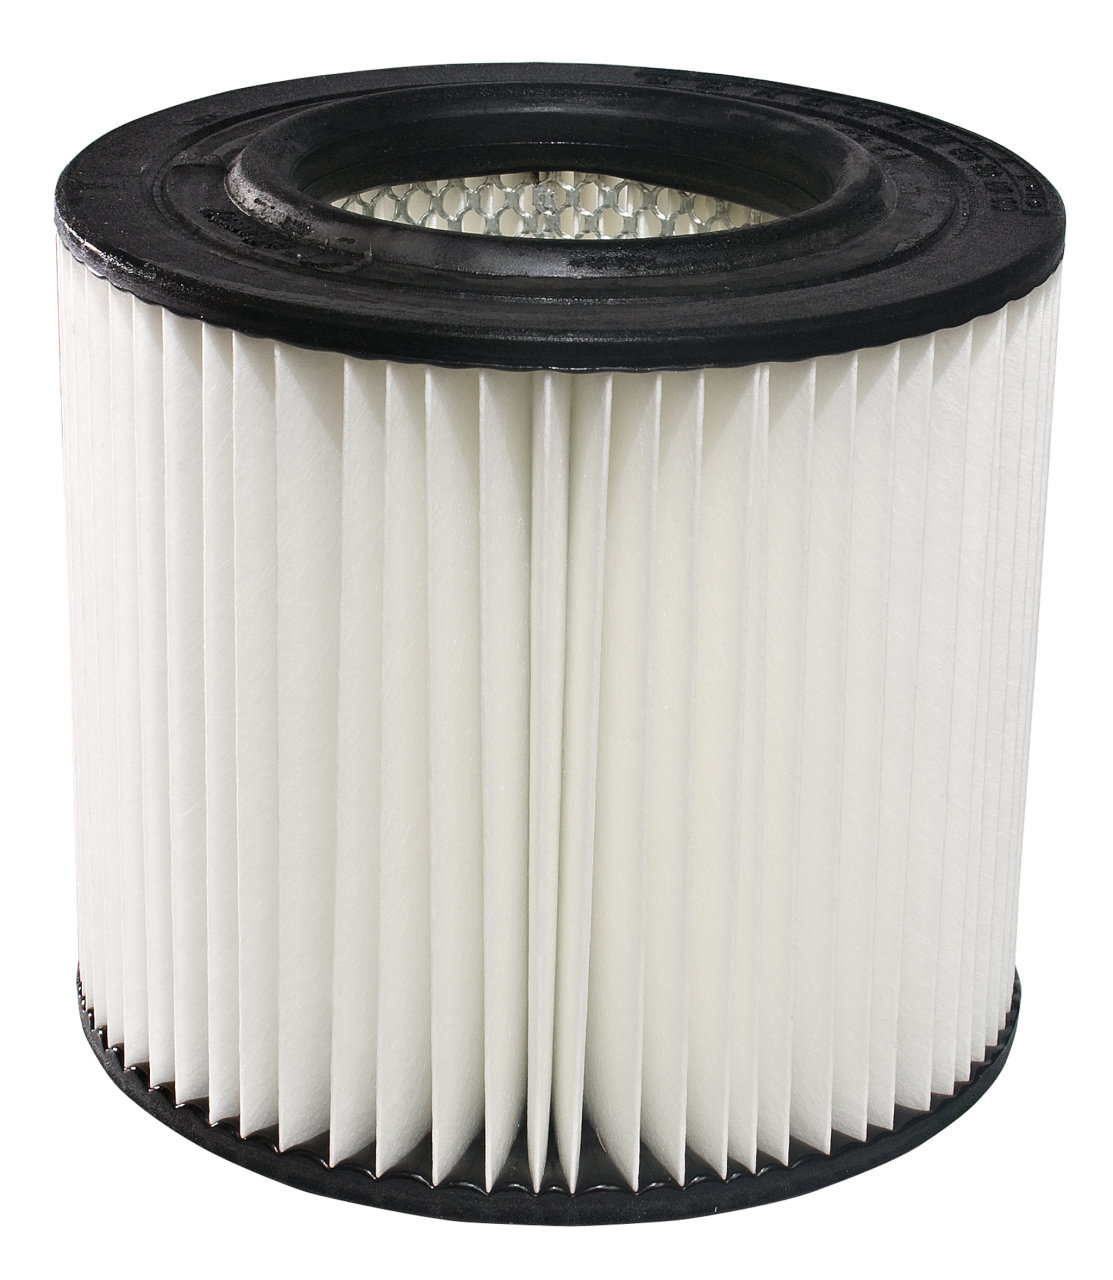 Fine filter, washable, A/C-series, Combo, DV 30